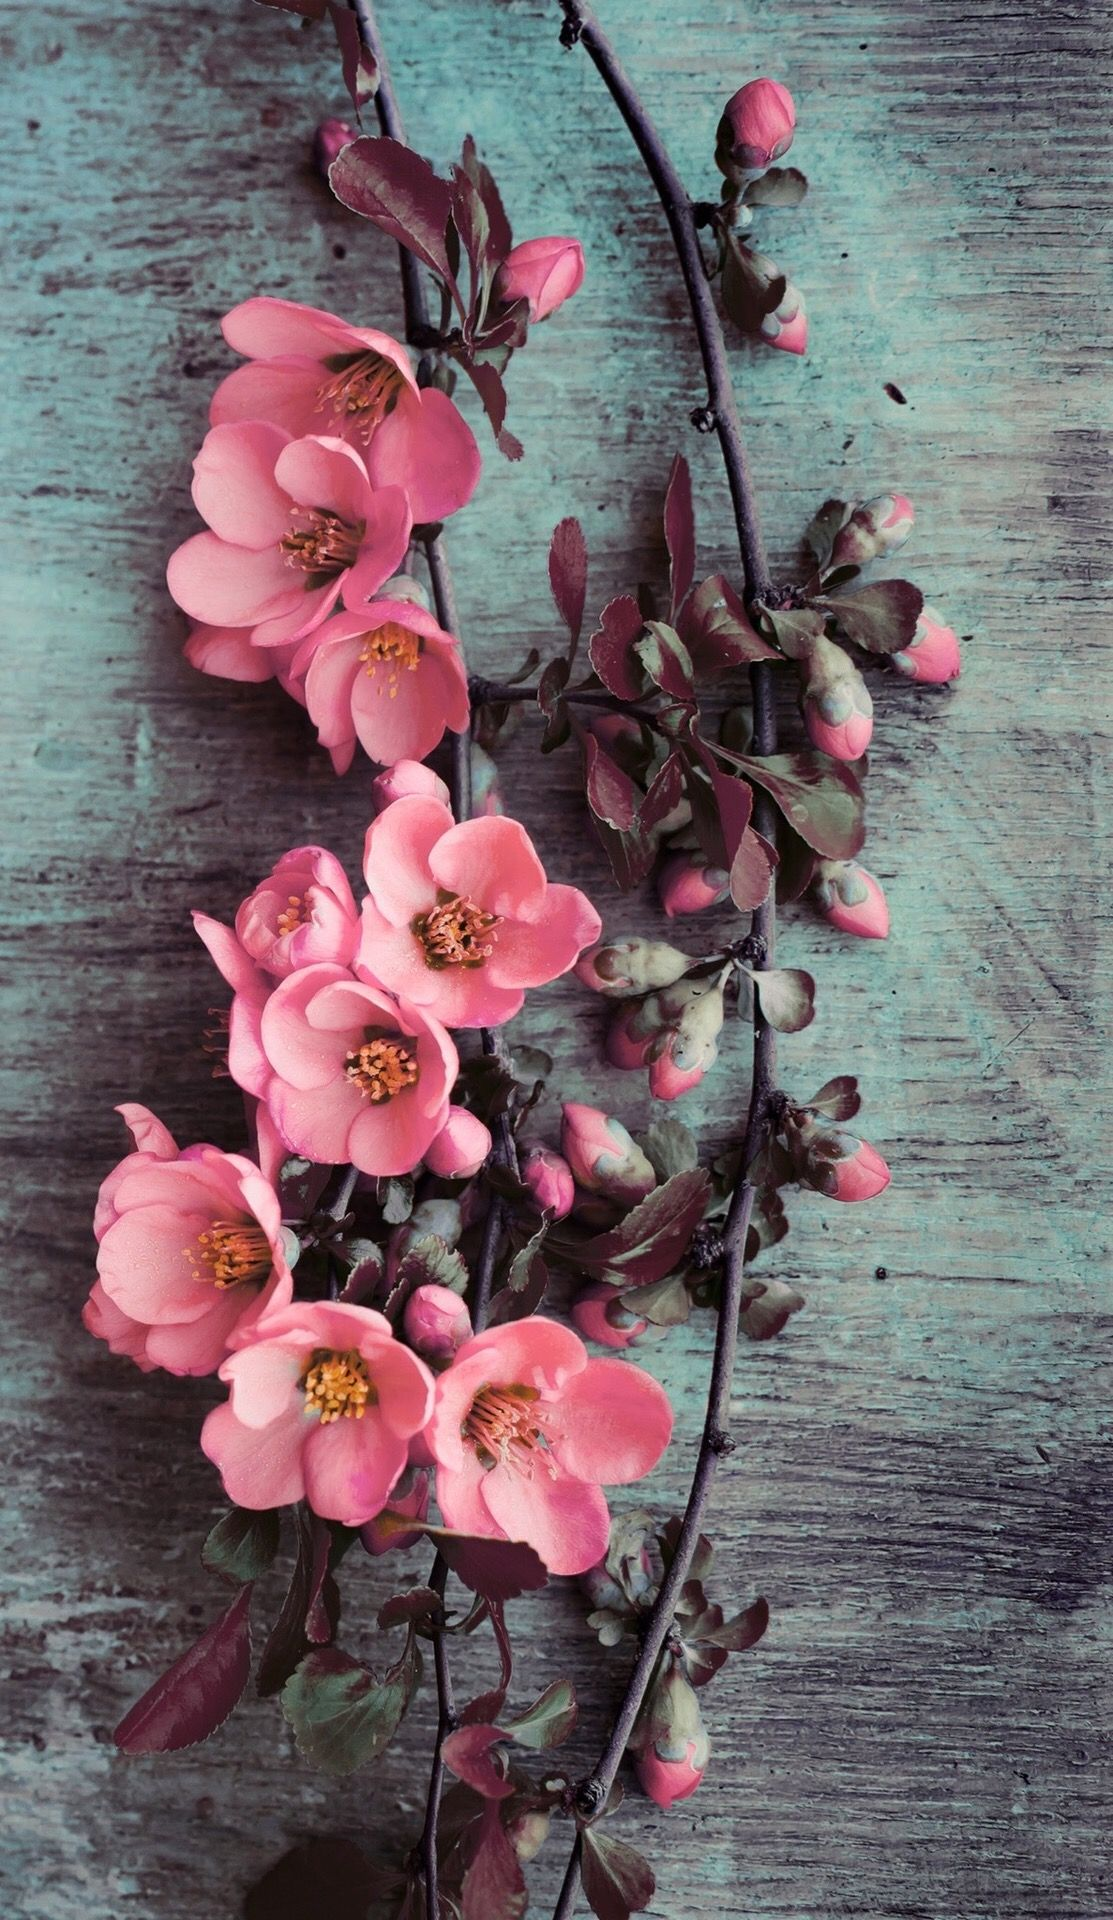 iphone background flowers wallpaper iphone pink flowers wallpapers iphone 11620